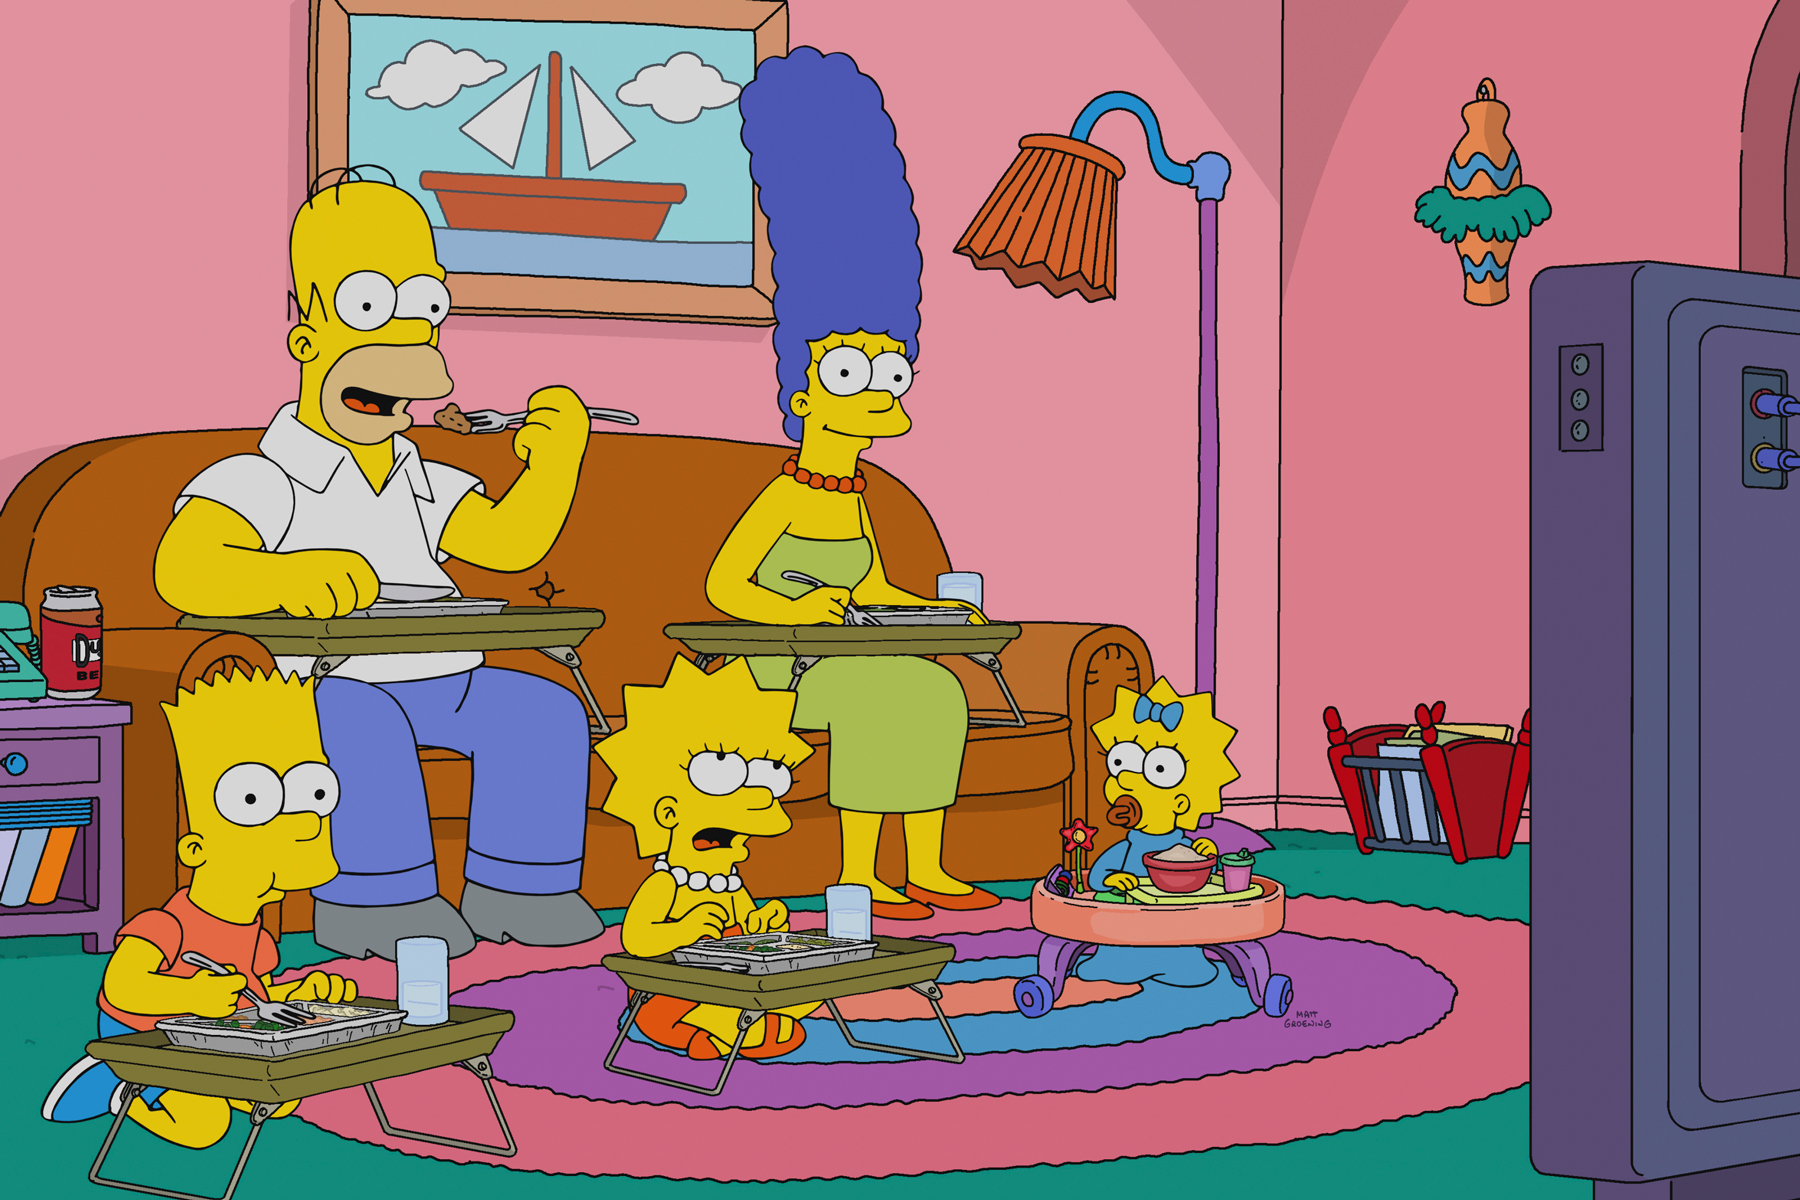 'The Simpsons' Renewed For Seasons 31 and 32